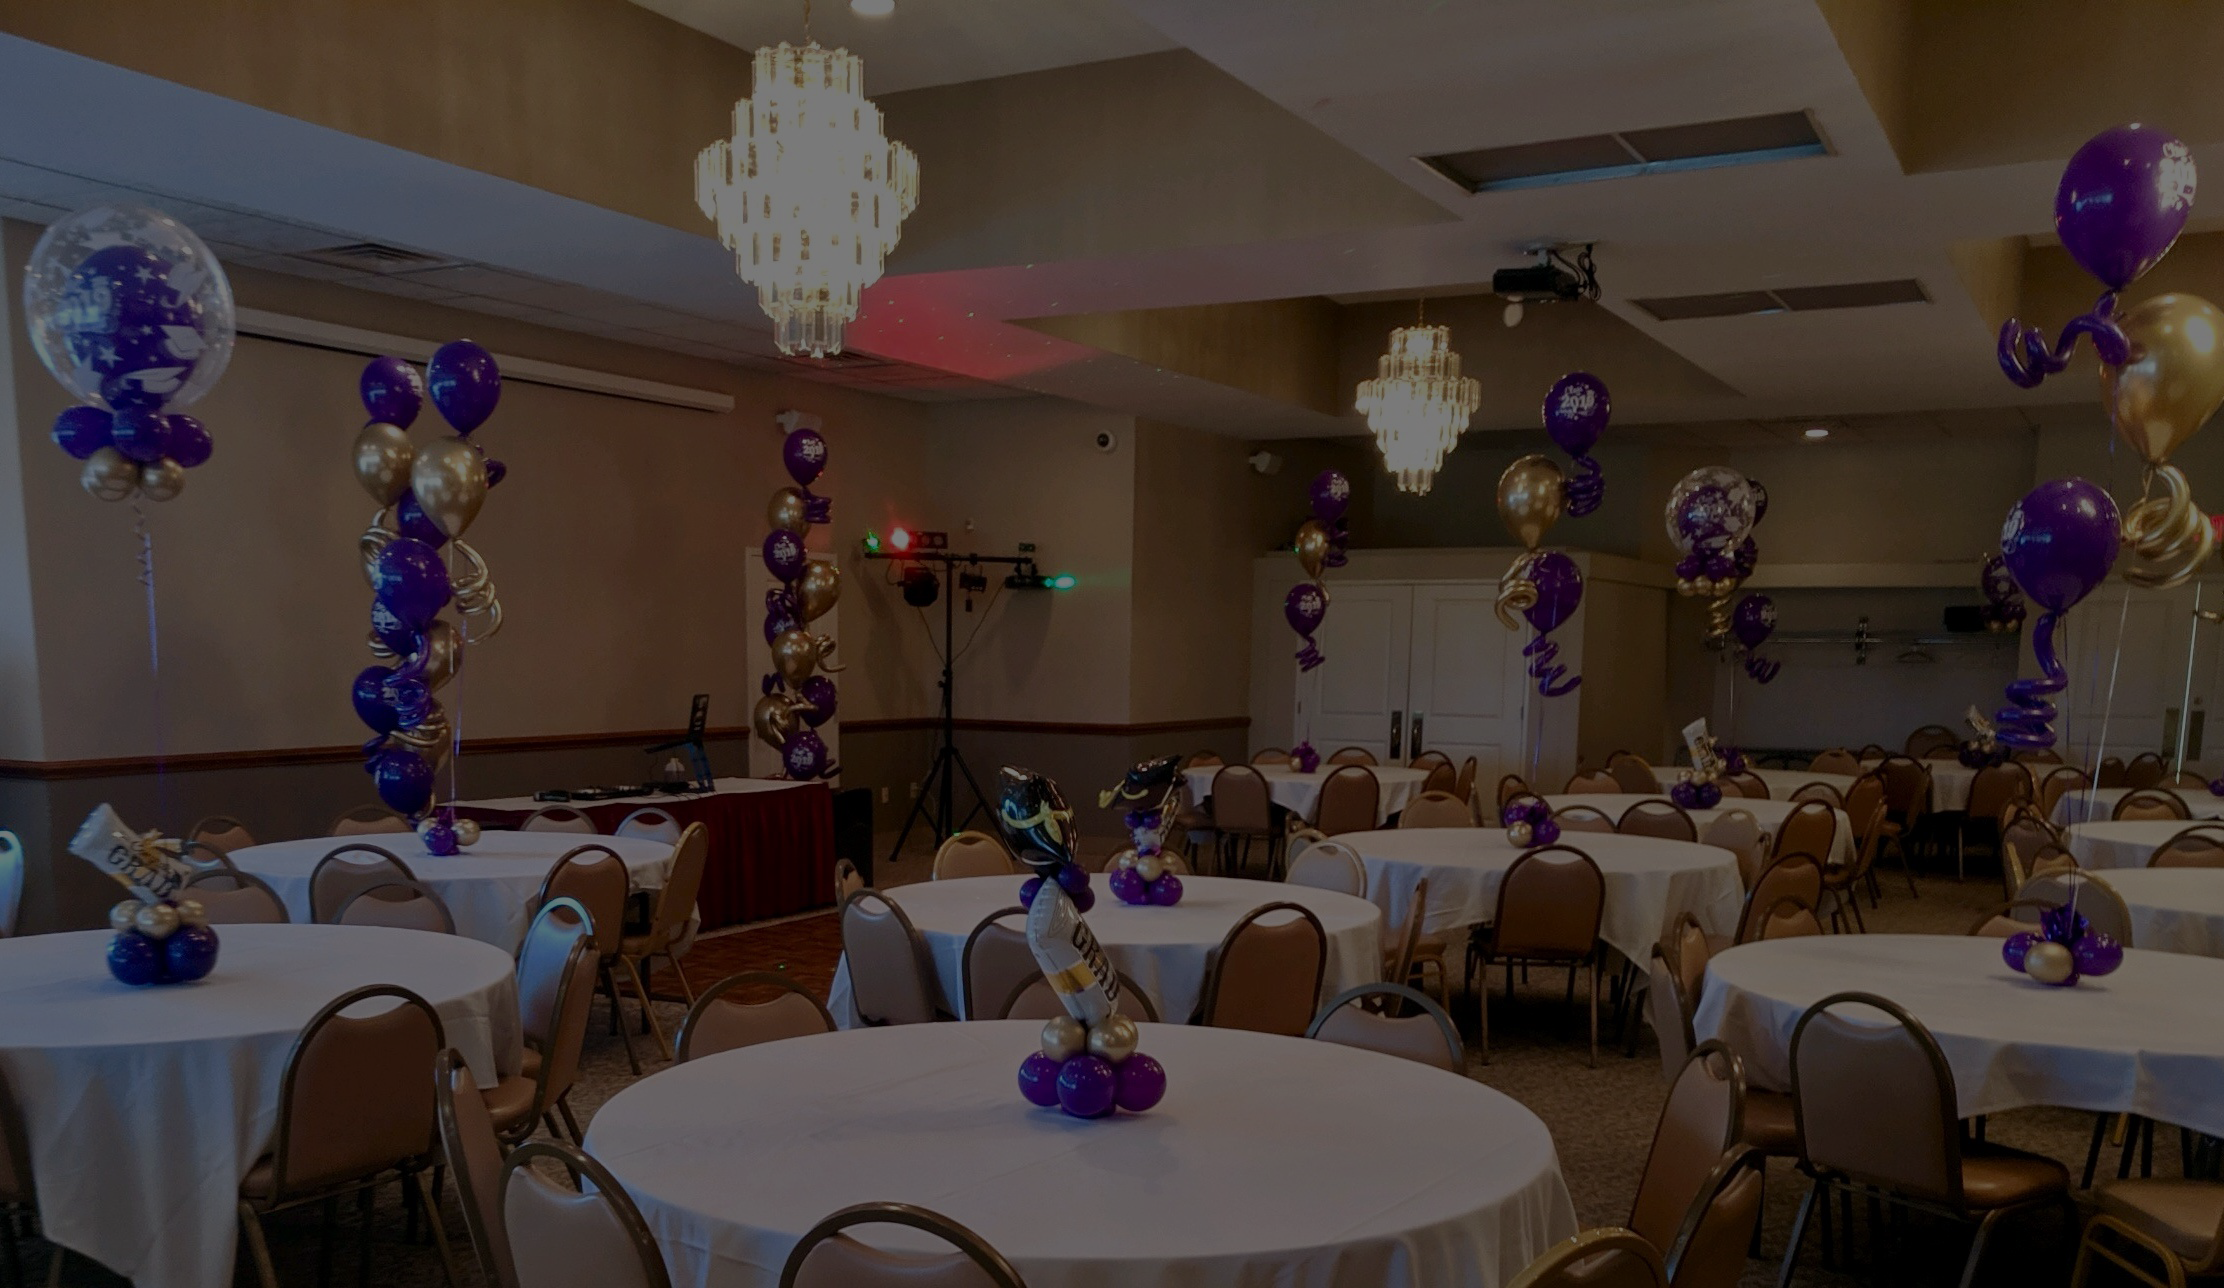 Kudos for the Banquet Room